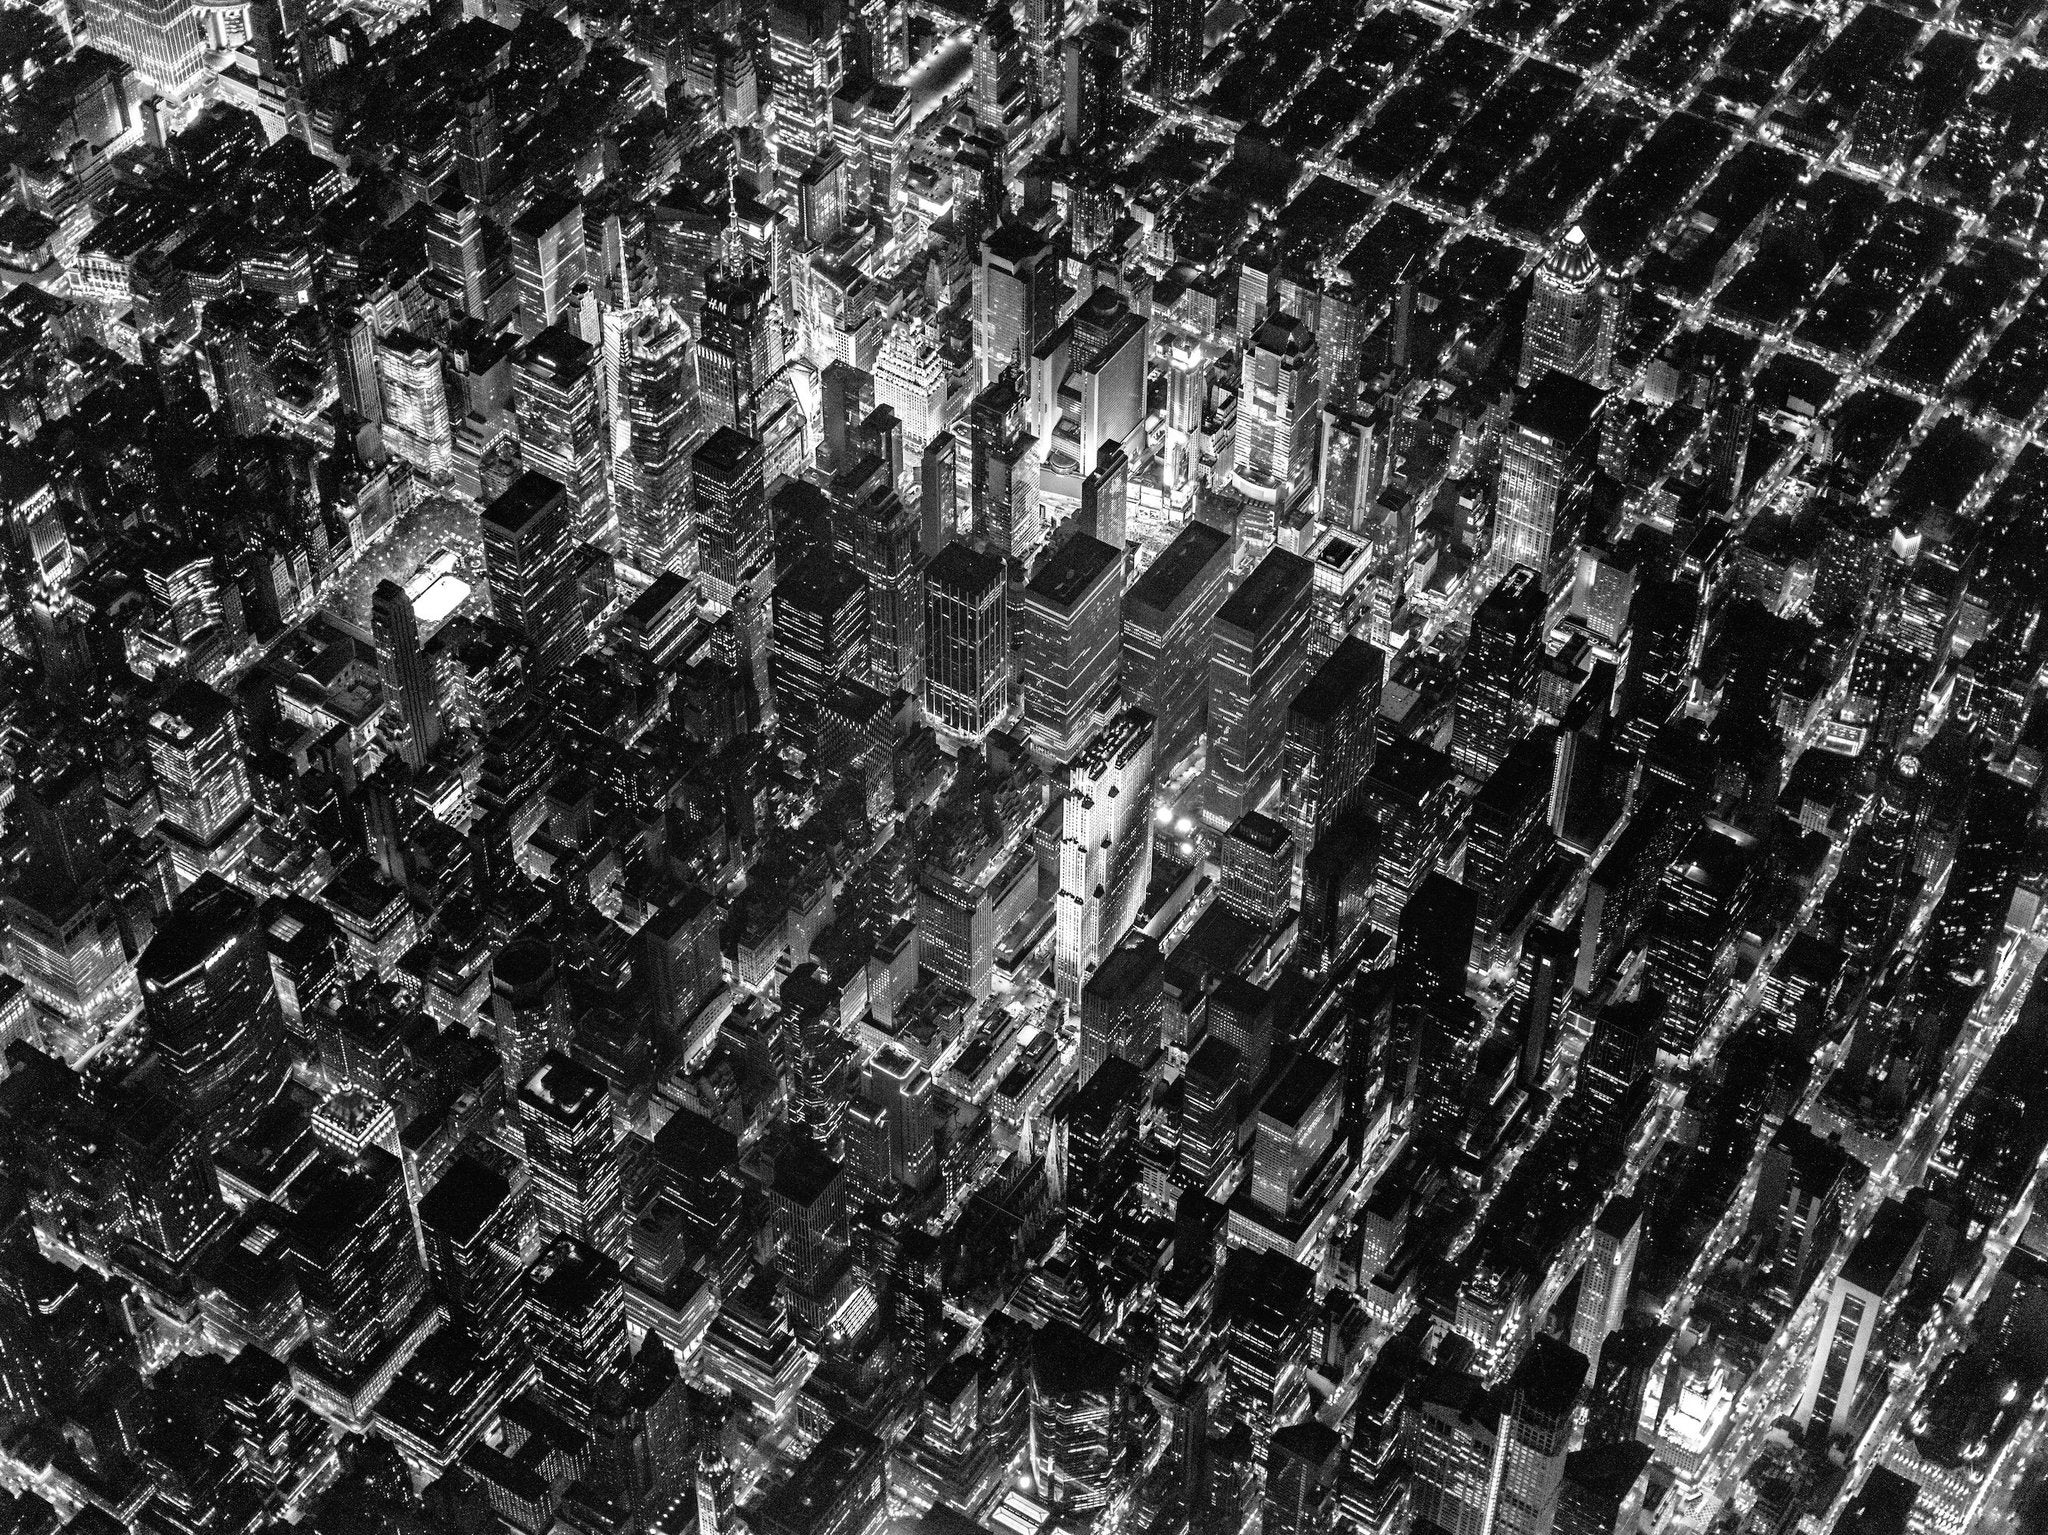 New York has never been photographed like in these new stunning images